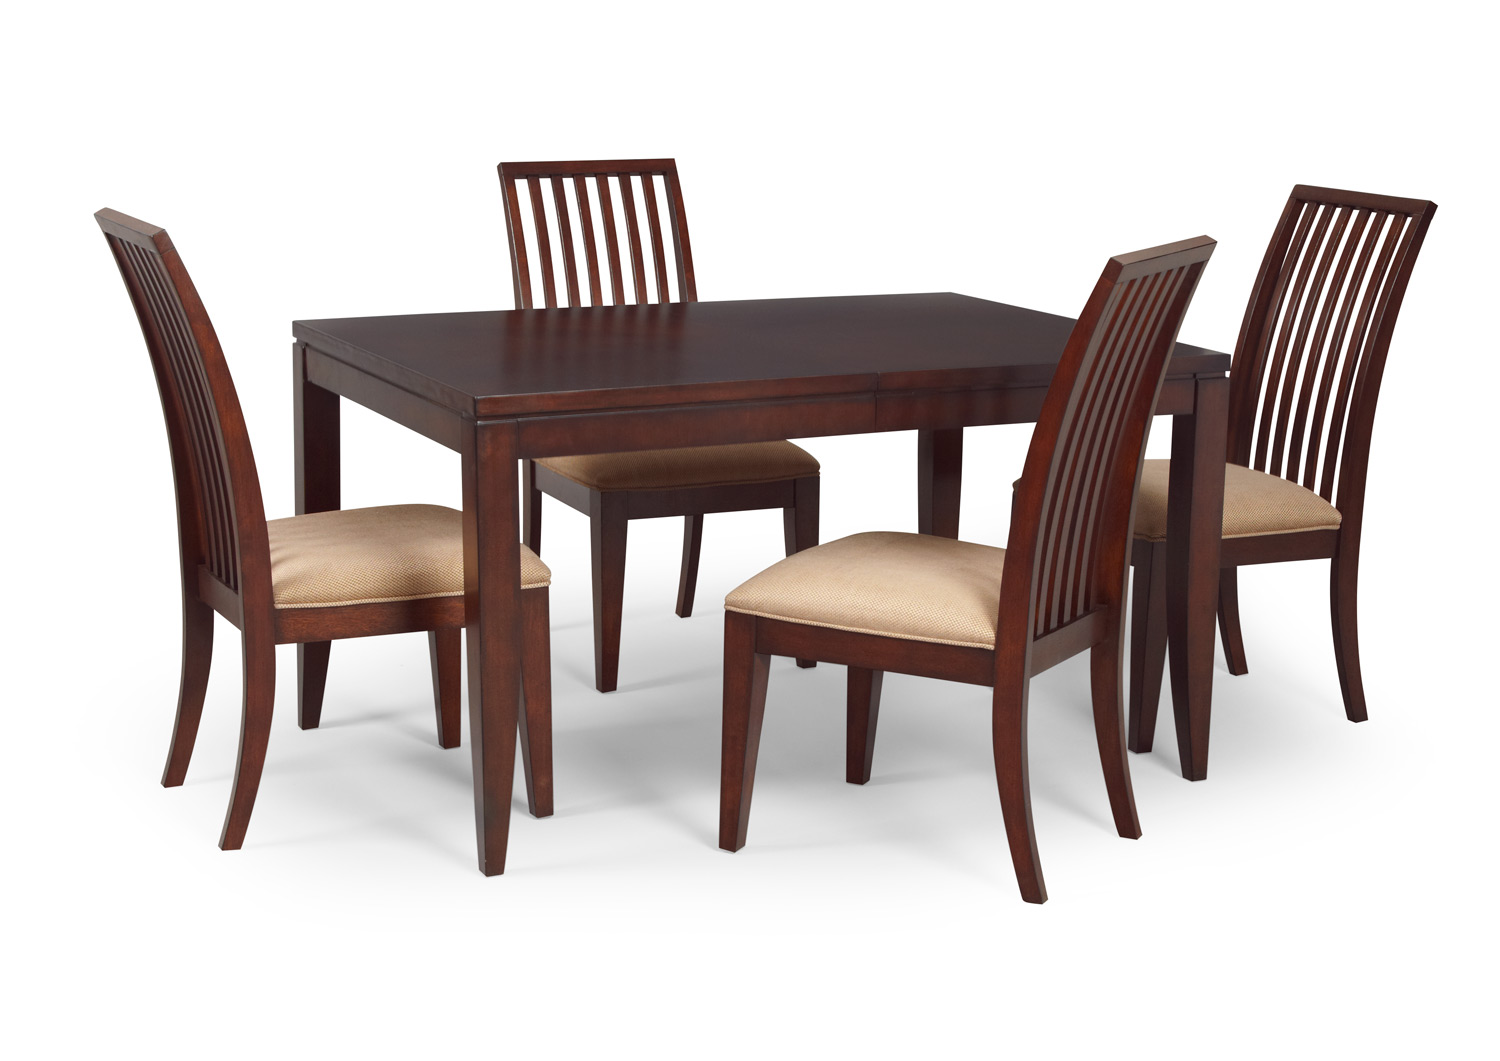 Legacy Classic Lawson 5 PC Dining Set - Medium Cherry